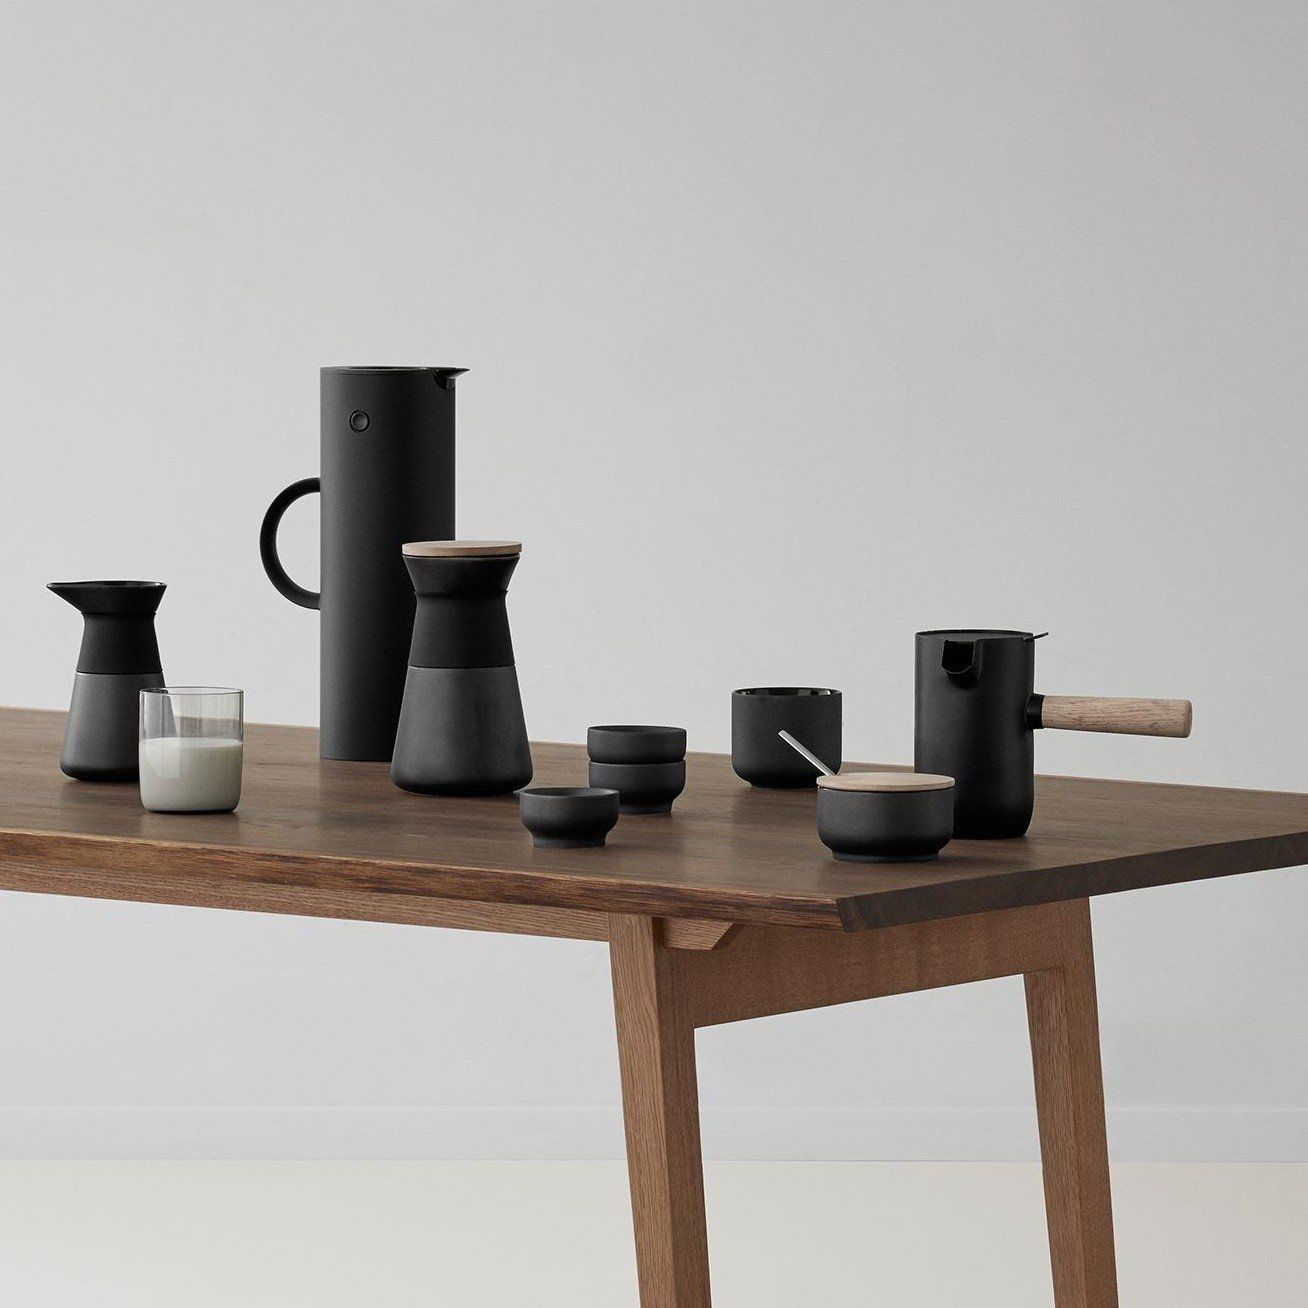 stelton collar kaffeem hle mit deckel ambientedirect. Black Bedroom Furniture Sets. Home Design Ideas